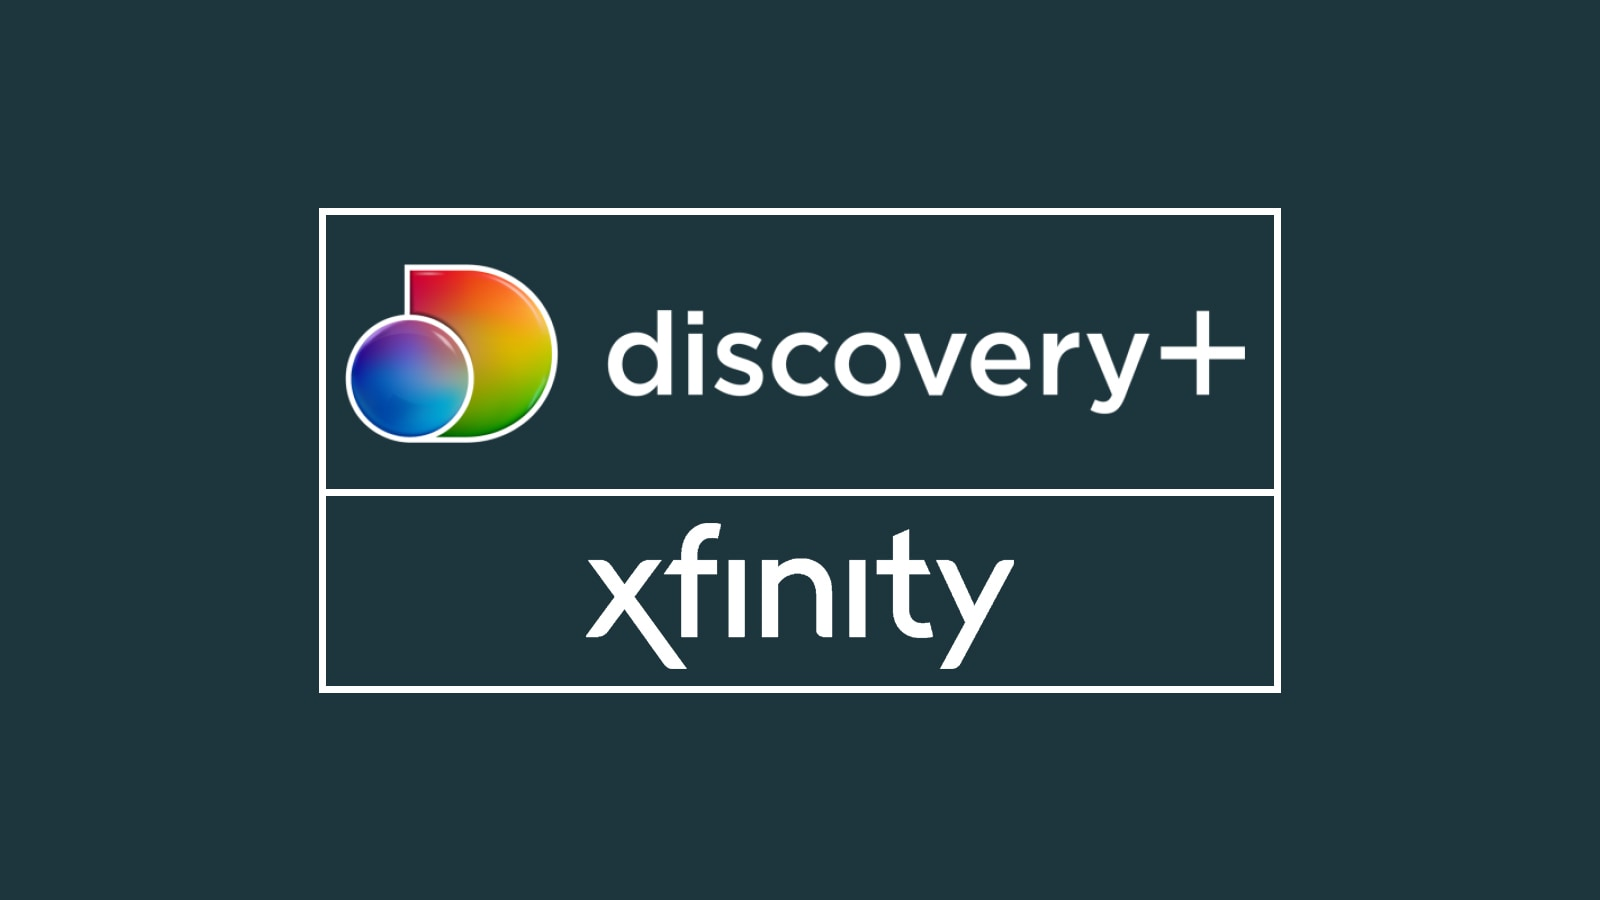 Here's How to Watch Discovery Plus on Xfinity in 2021